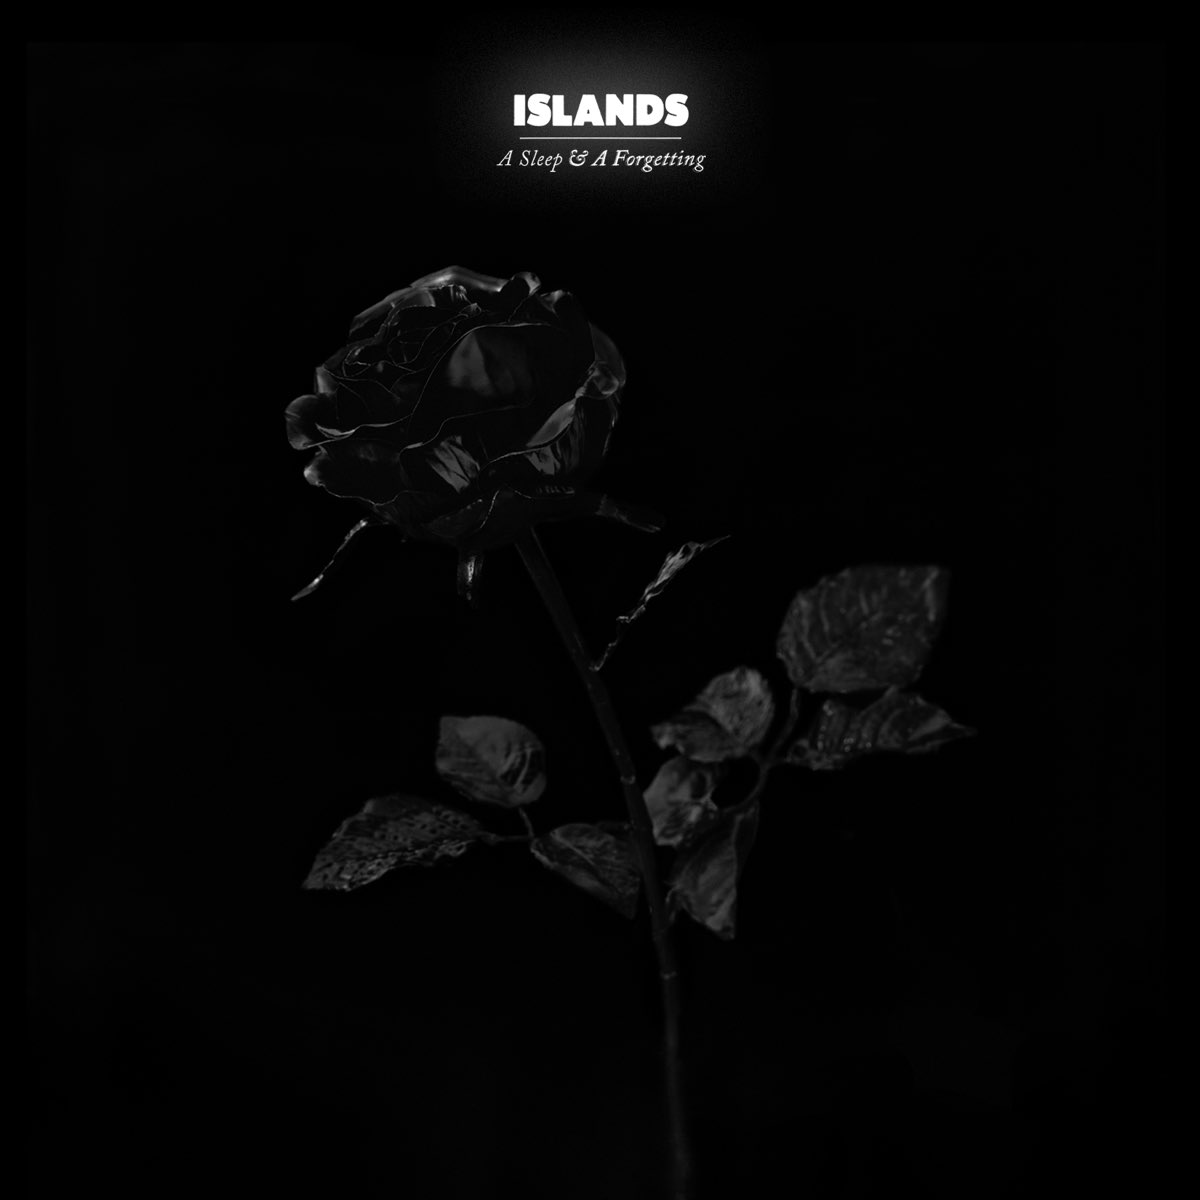 Islands, A Sleep & a Forgetting